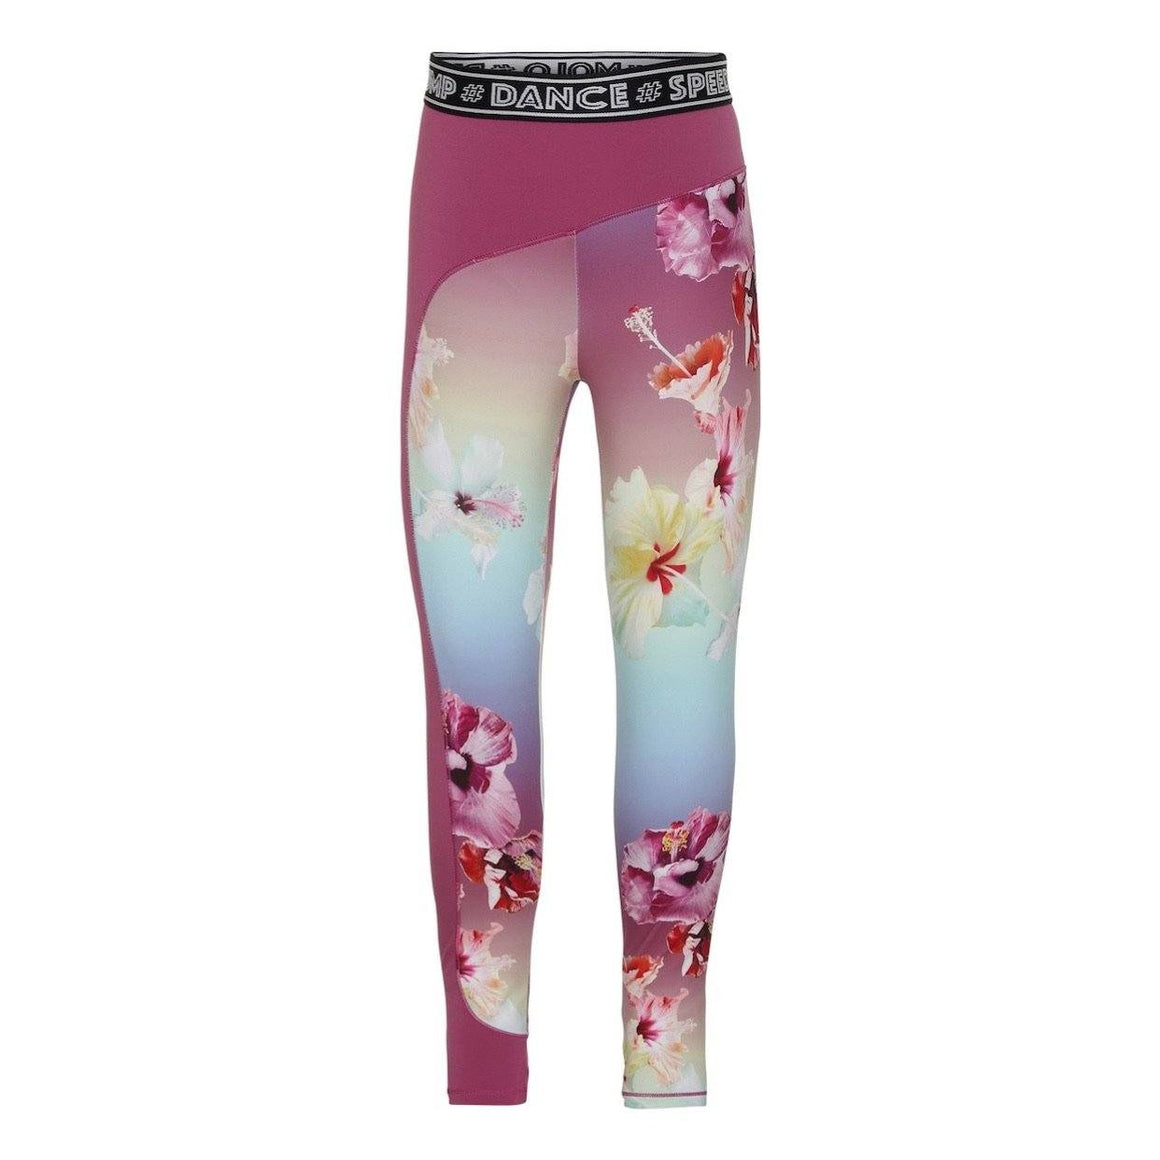 Molo - Olympia - Hibiscus Rainbow Leggings Leggings Molo 15/16 Years (170/176)